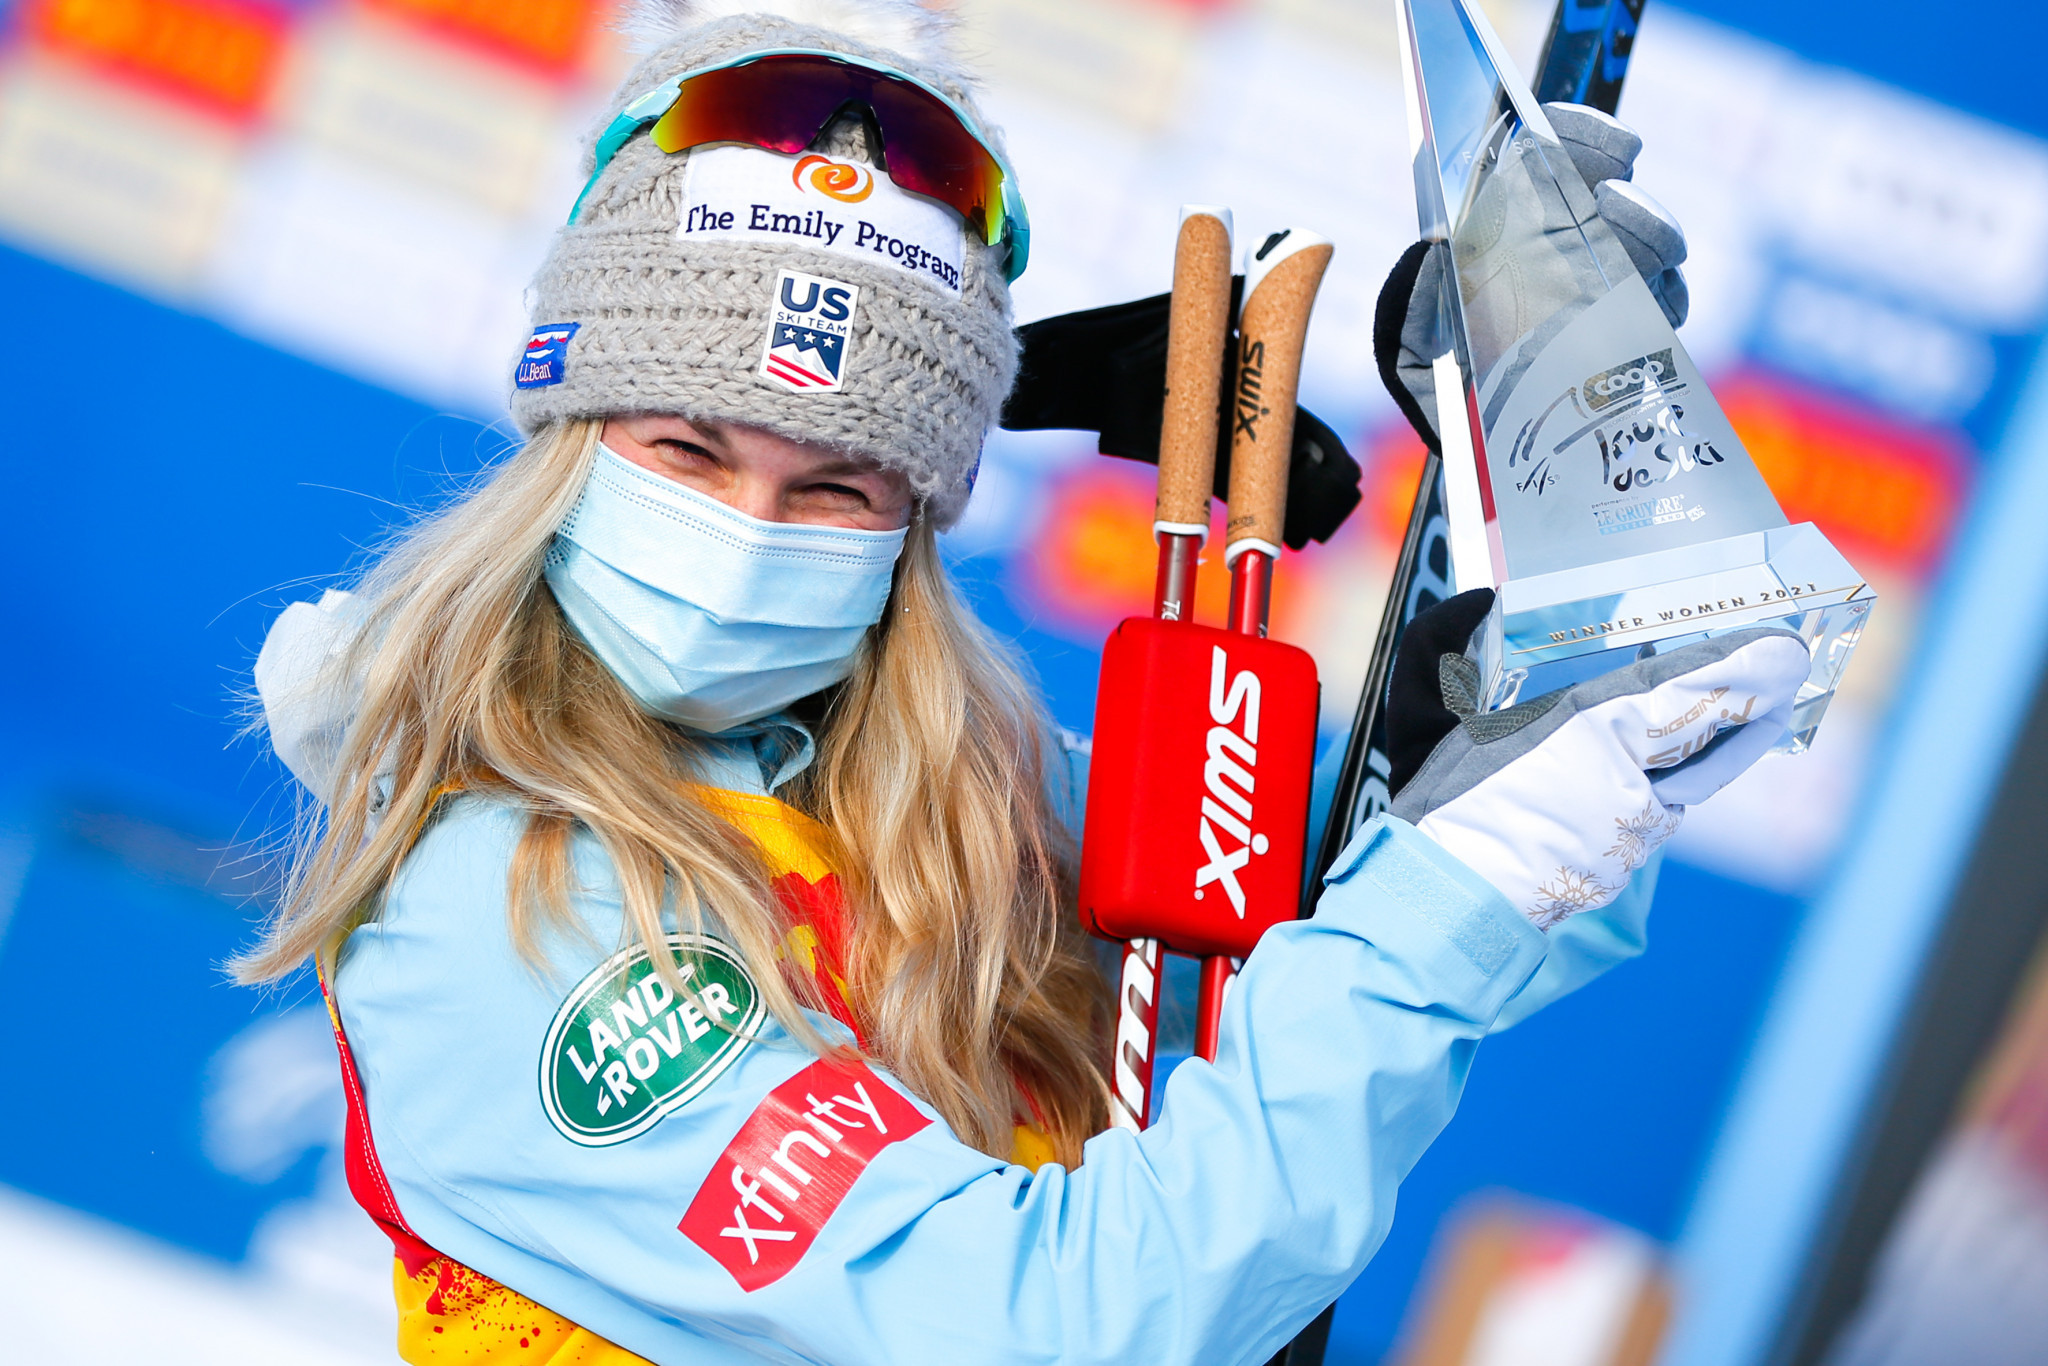 Jessie Diggins of the United States became the first non-European athlete to win the Tour de Ski ©Getty Images